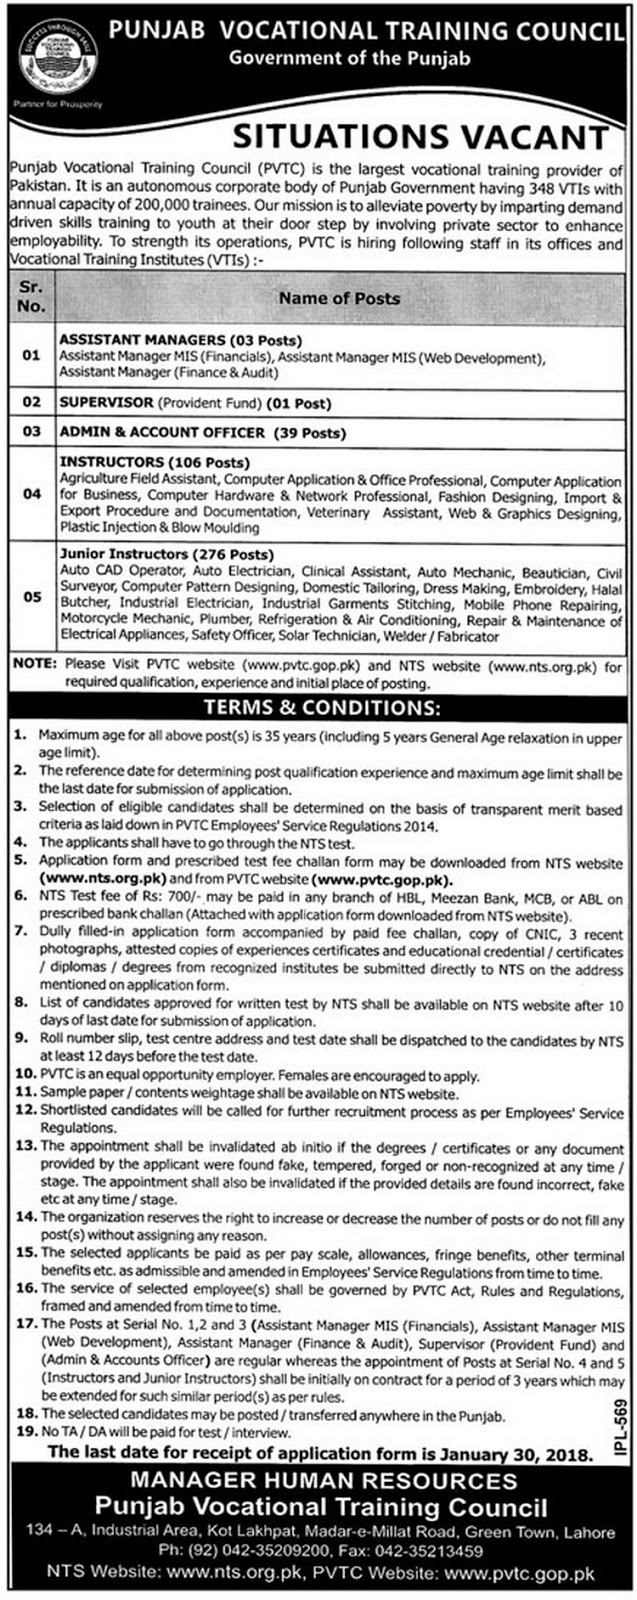 Punjab Vocational Training Council Jobs 2018